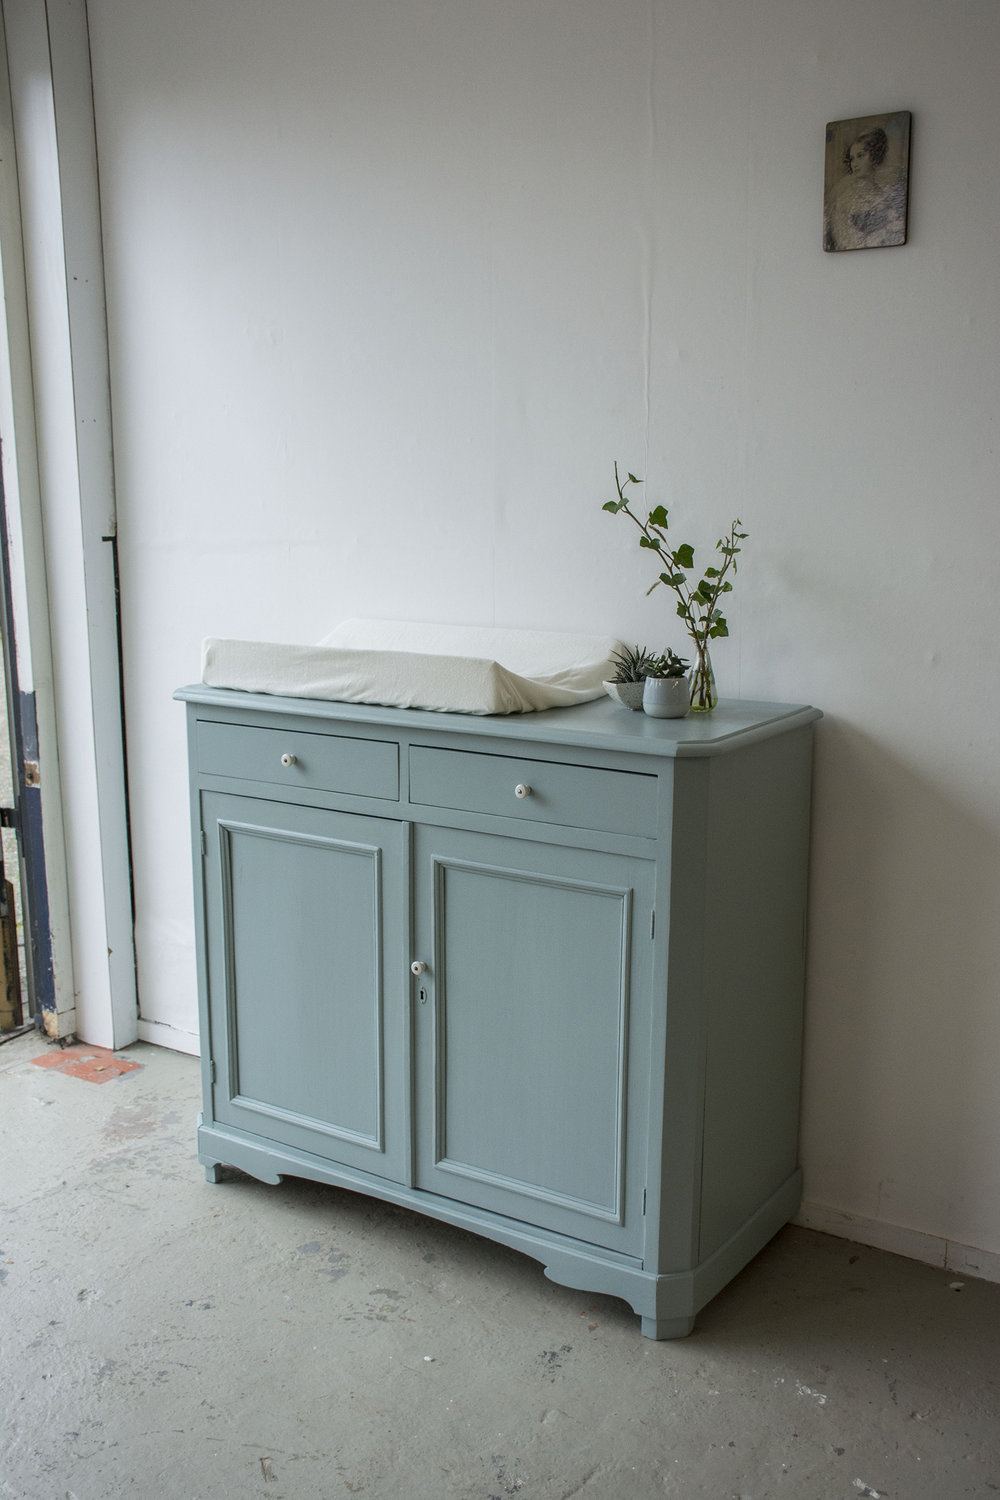 Oval room blue commode - Firma Zoethout_1.jpg